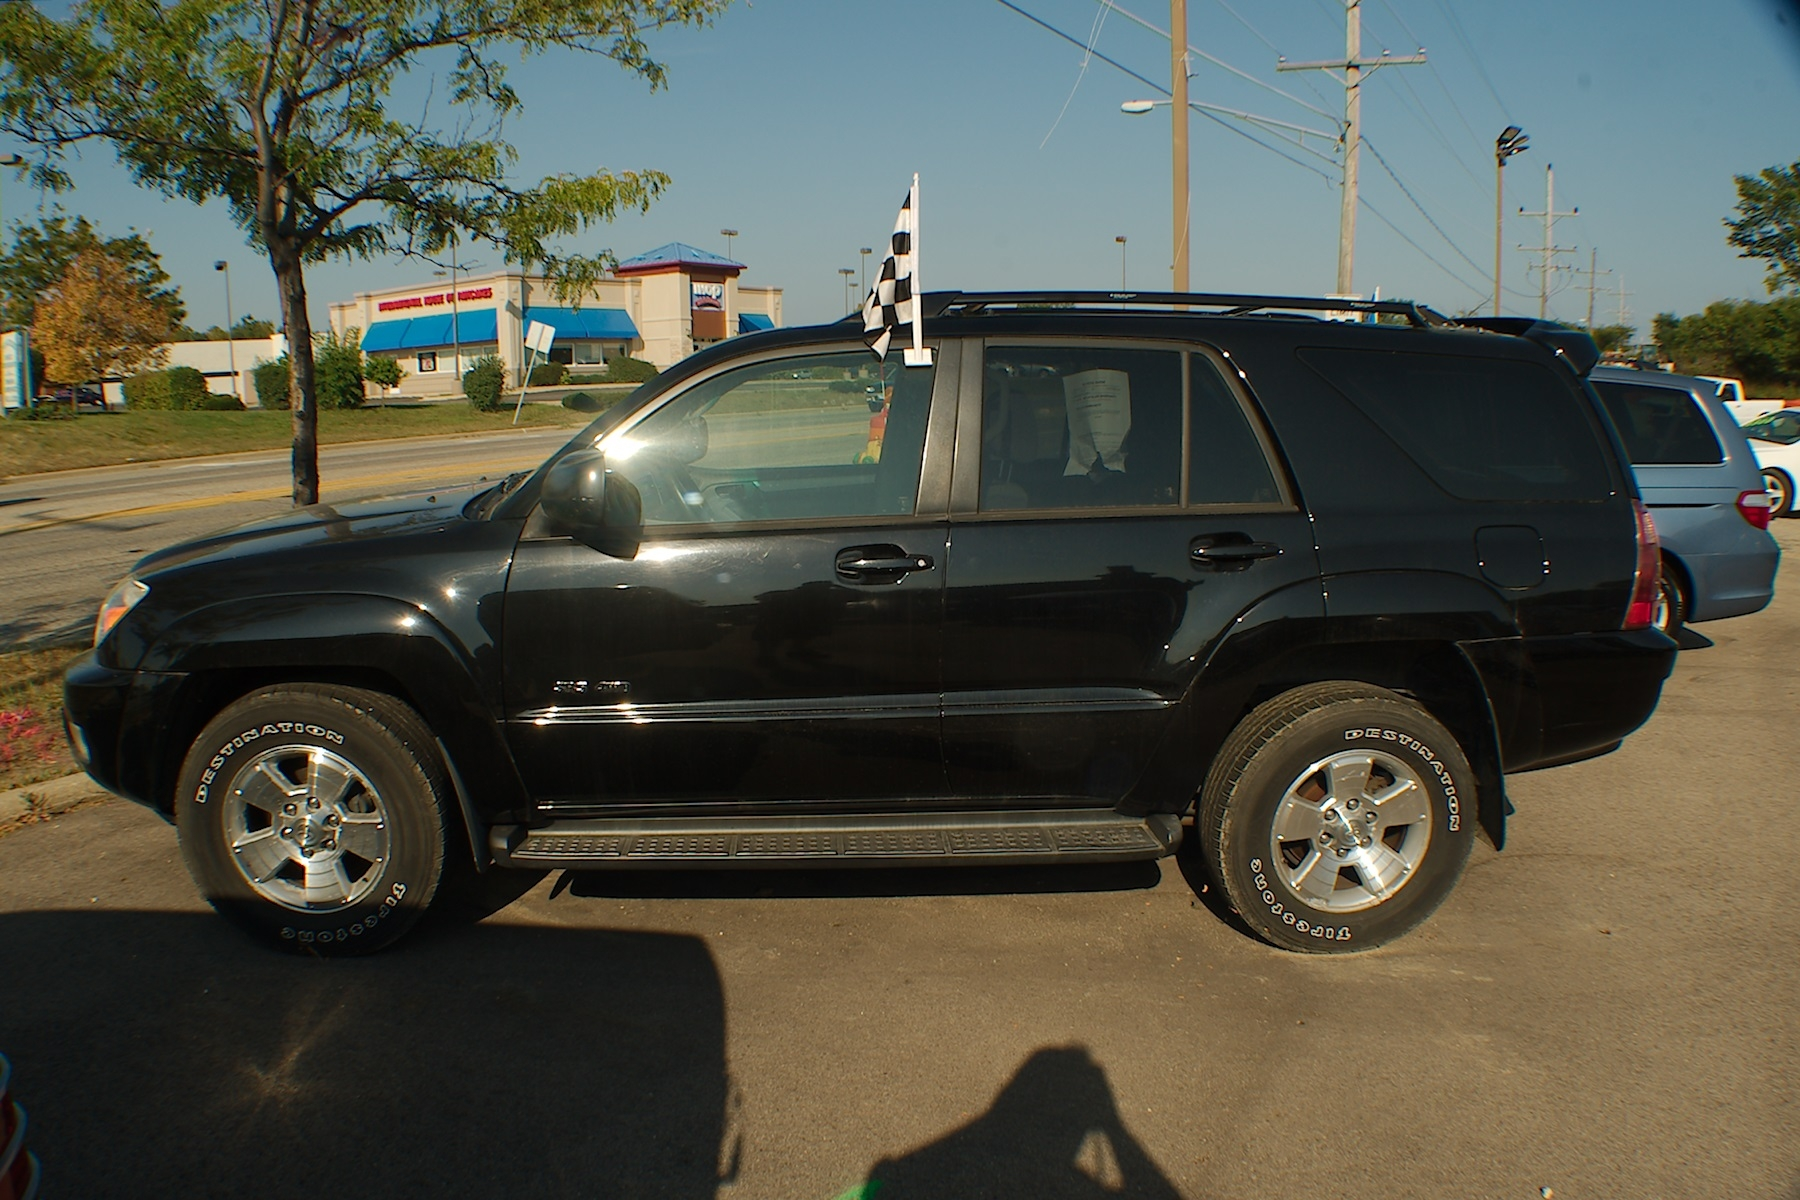 2005 Toyota 4Runner Black SUV 4x4 Used Car Sale Antioch Zion Waukegan Lake County Illinois